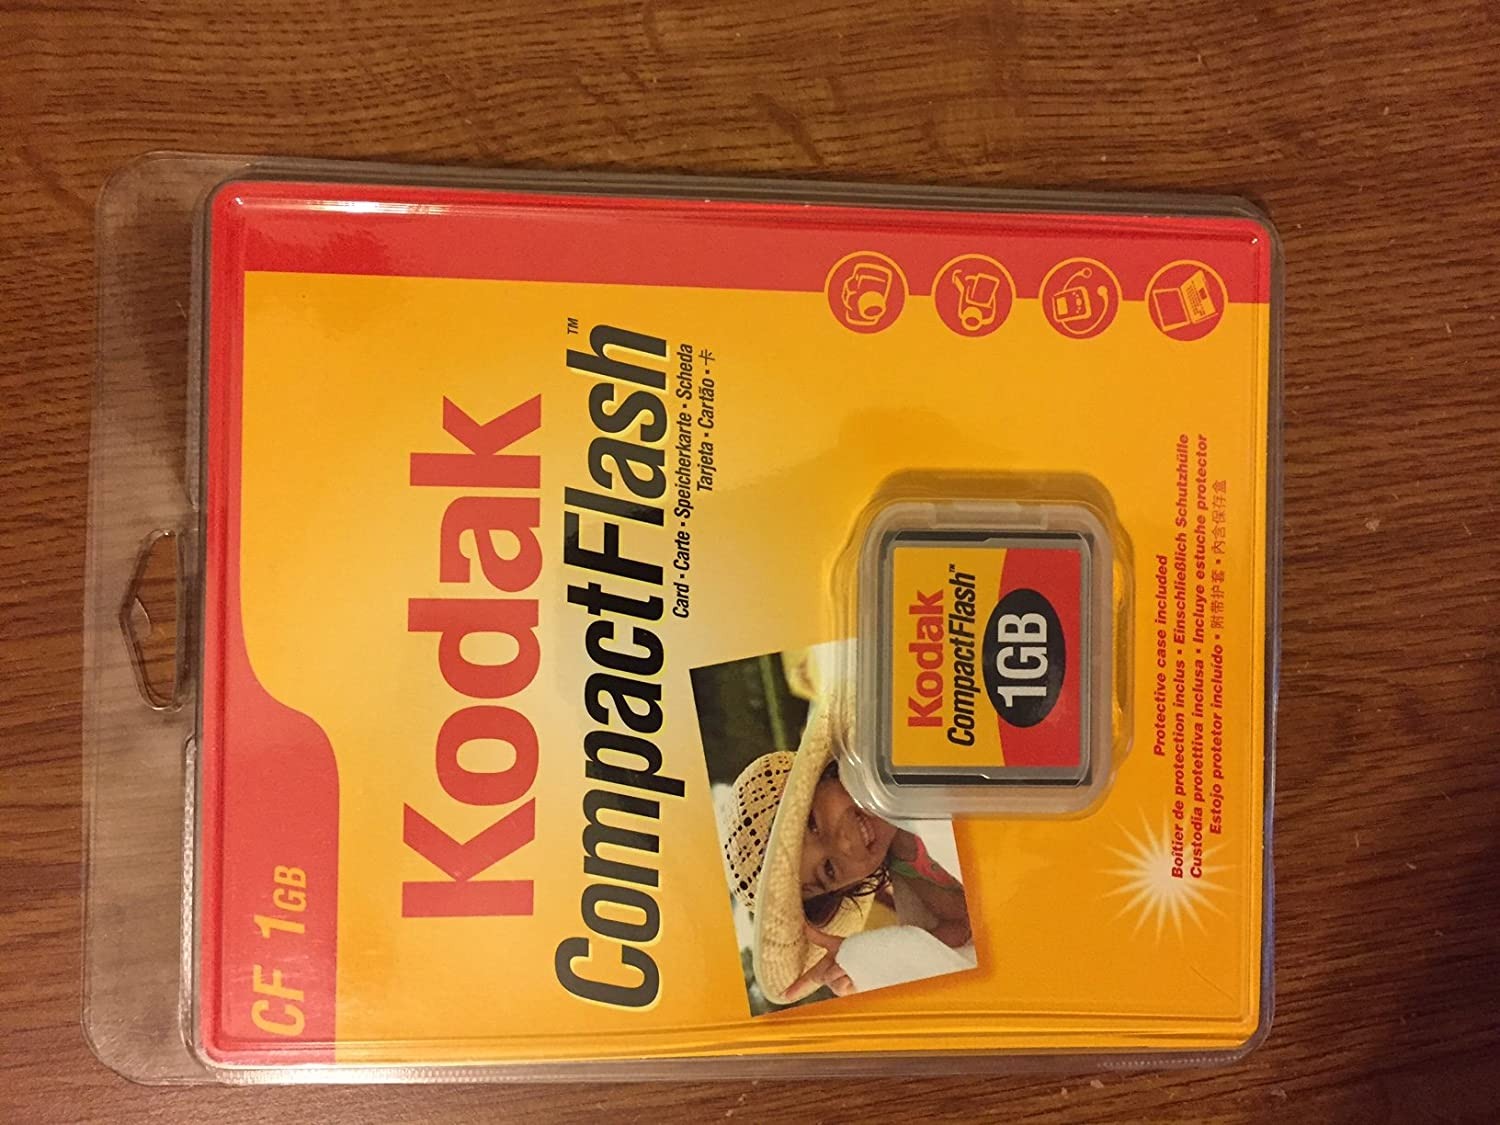 Kodak 1GB Compact Flash Memory Card,Retail Package (KPCF1GBSCN)